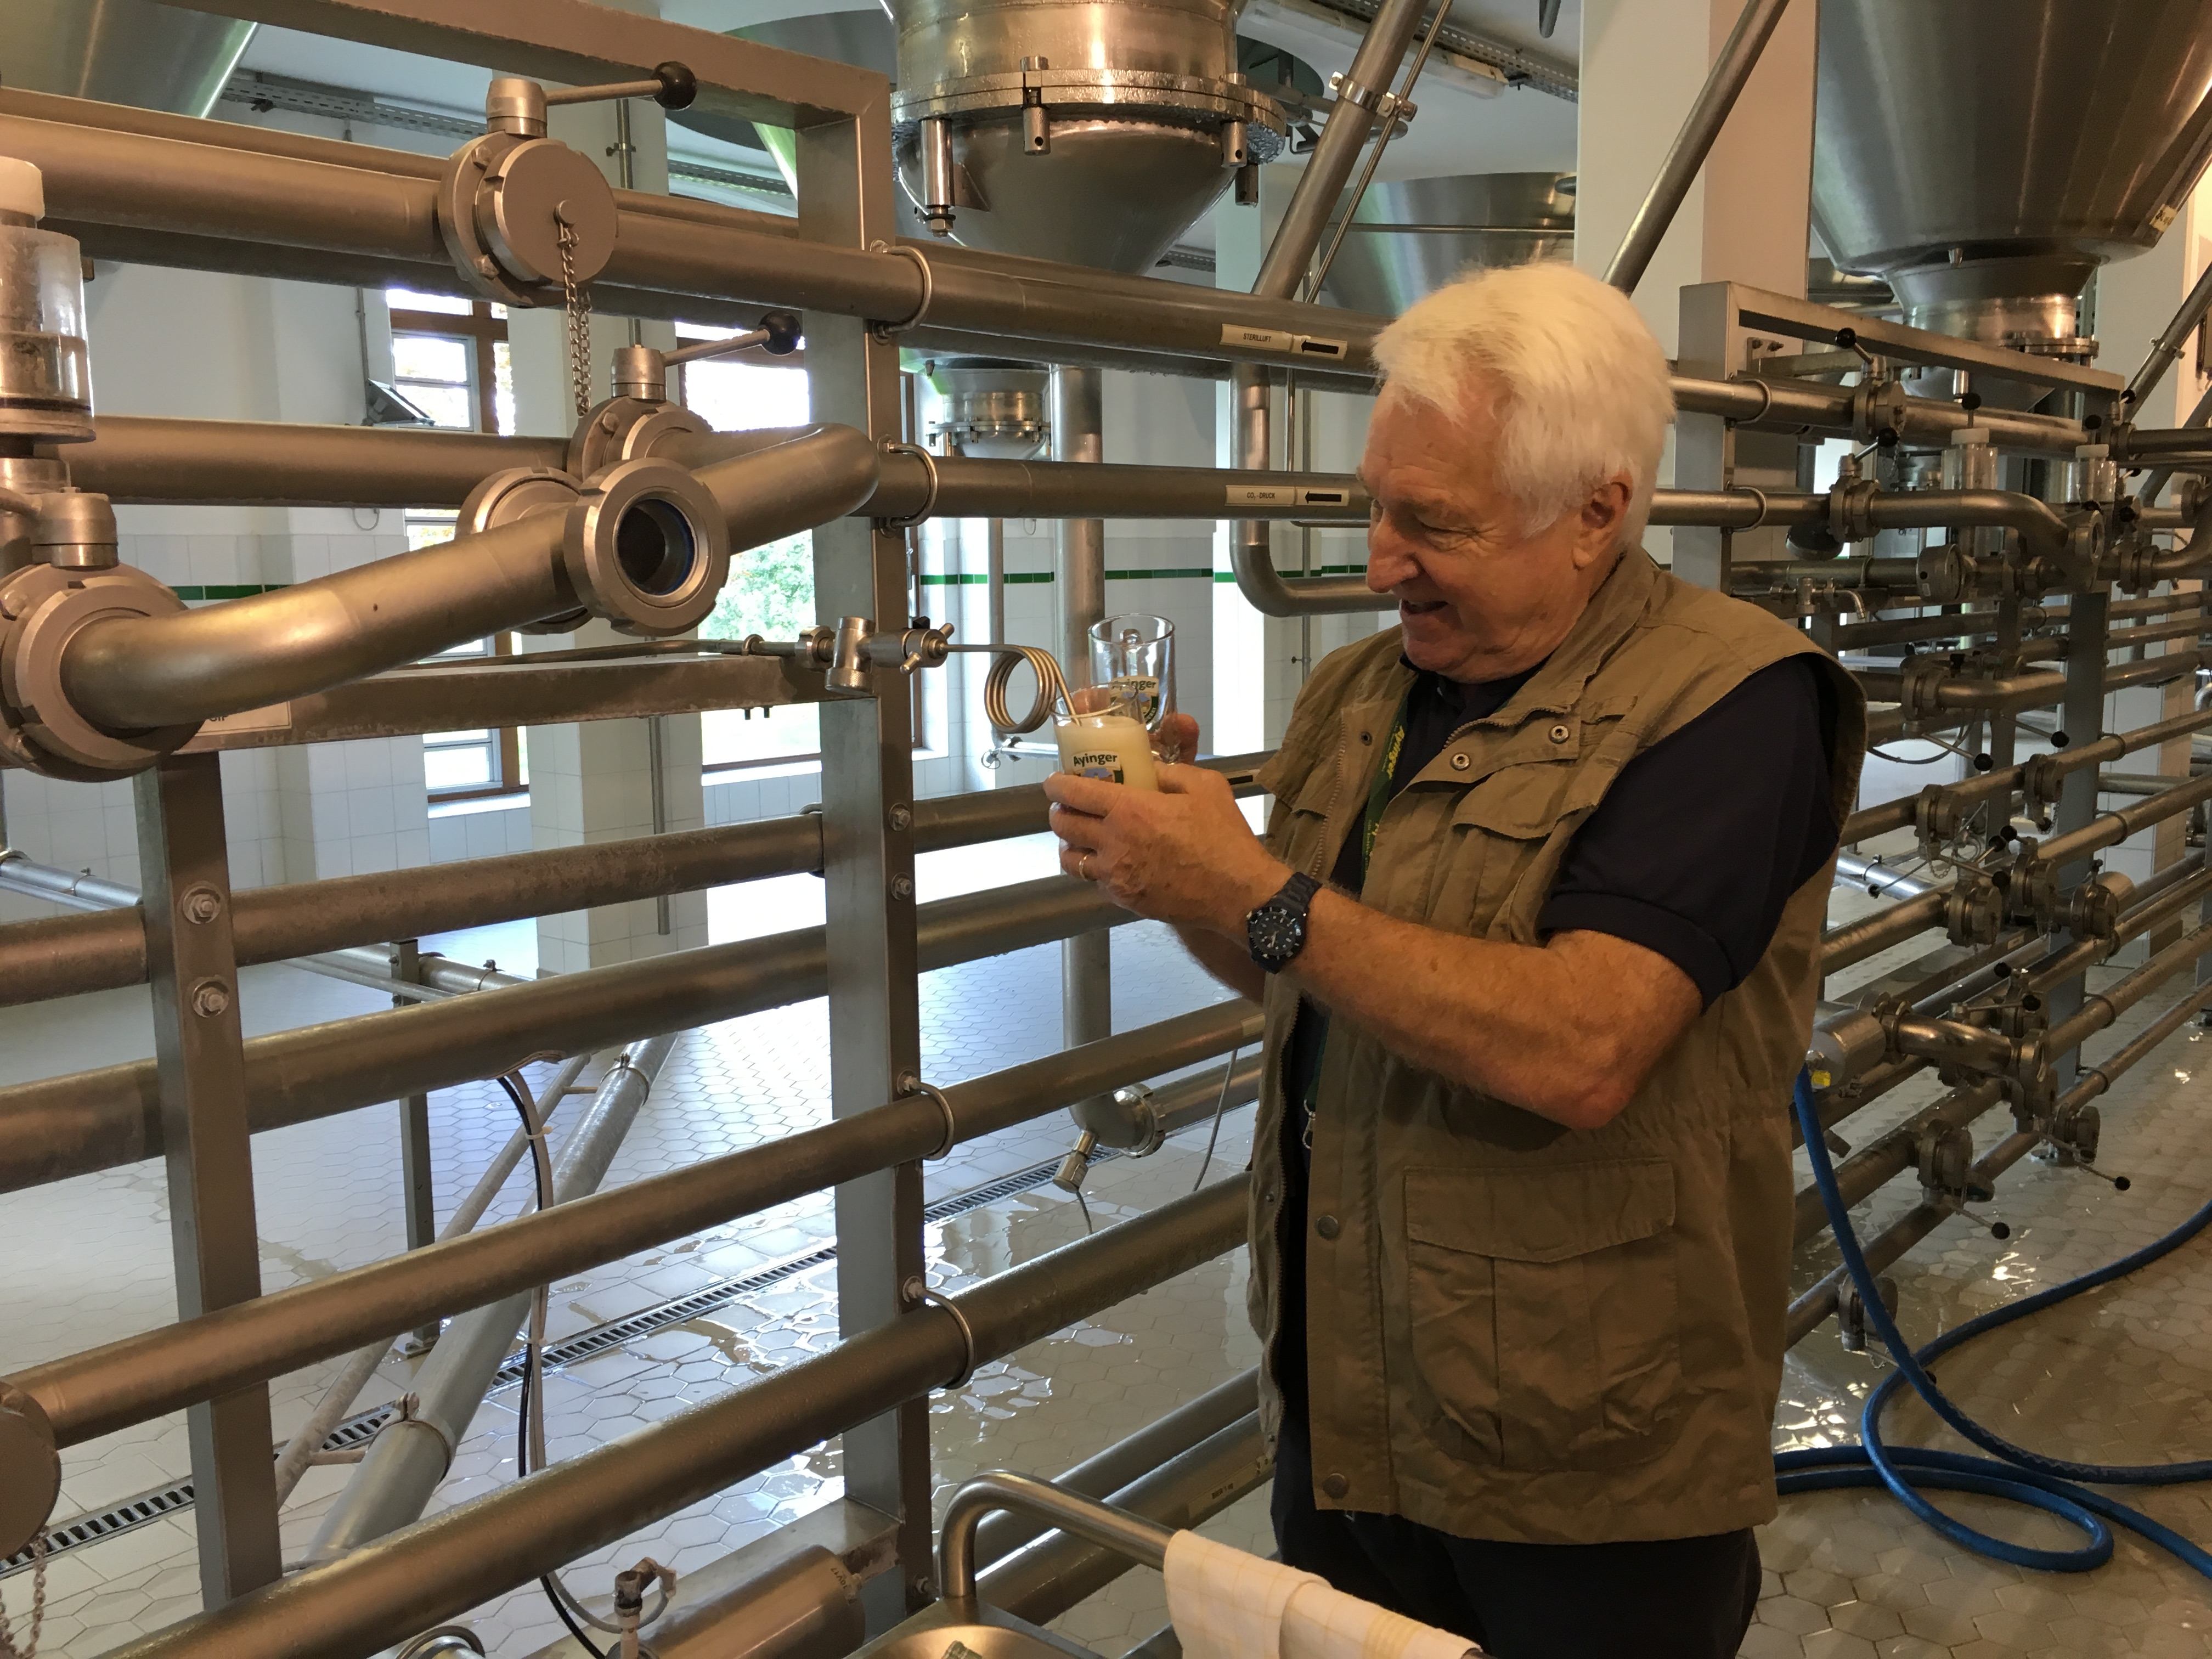 Our most excellent tour guide, Ralf Wappler, pouring from the zwickel at Ayinger Brewery.